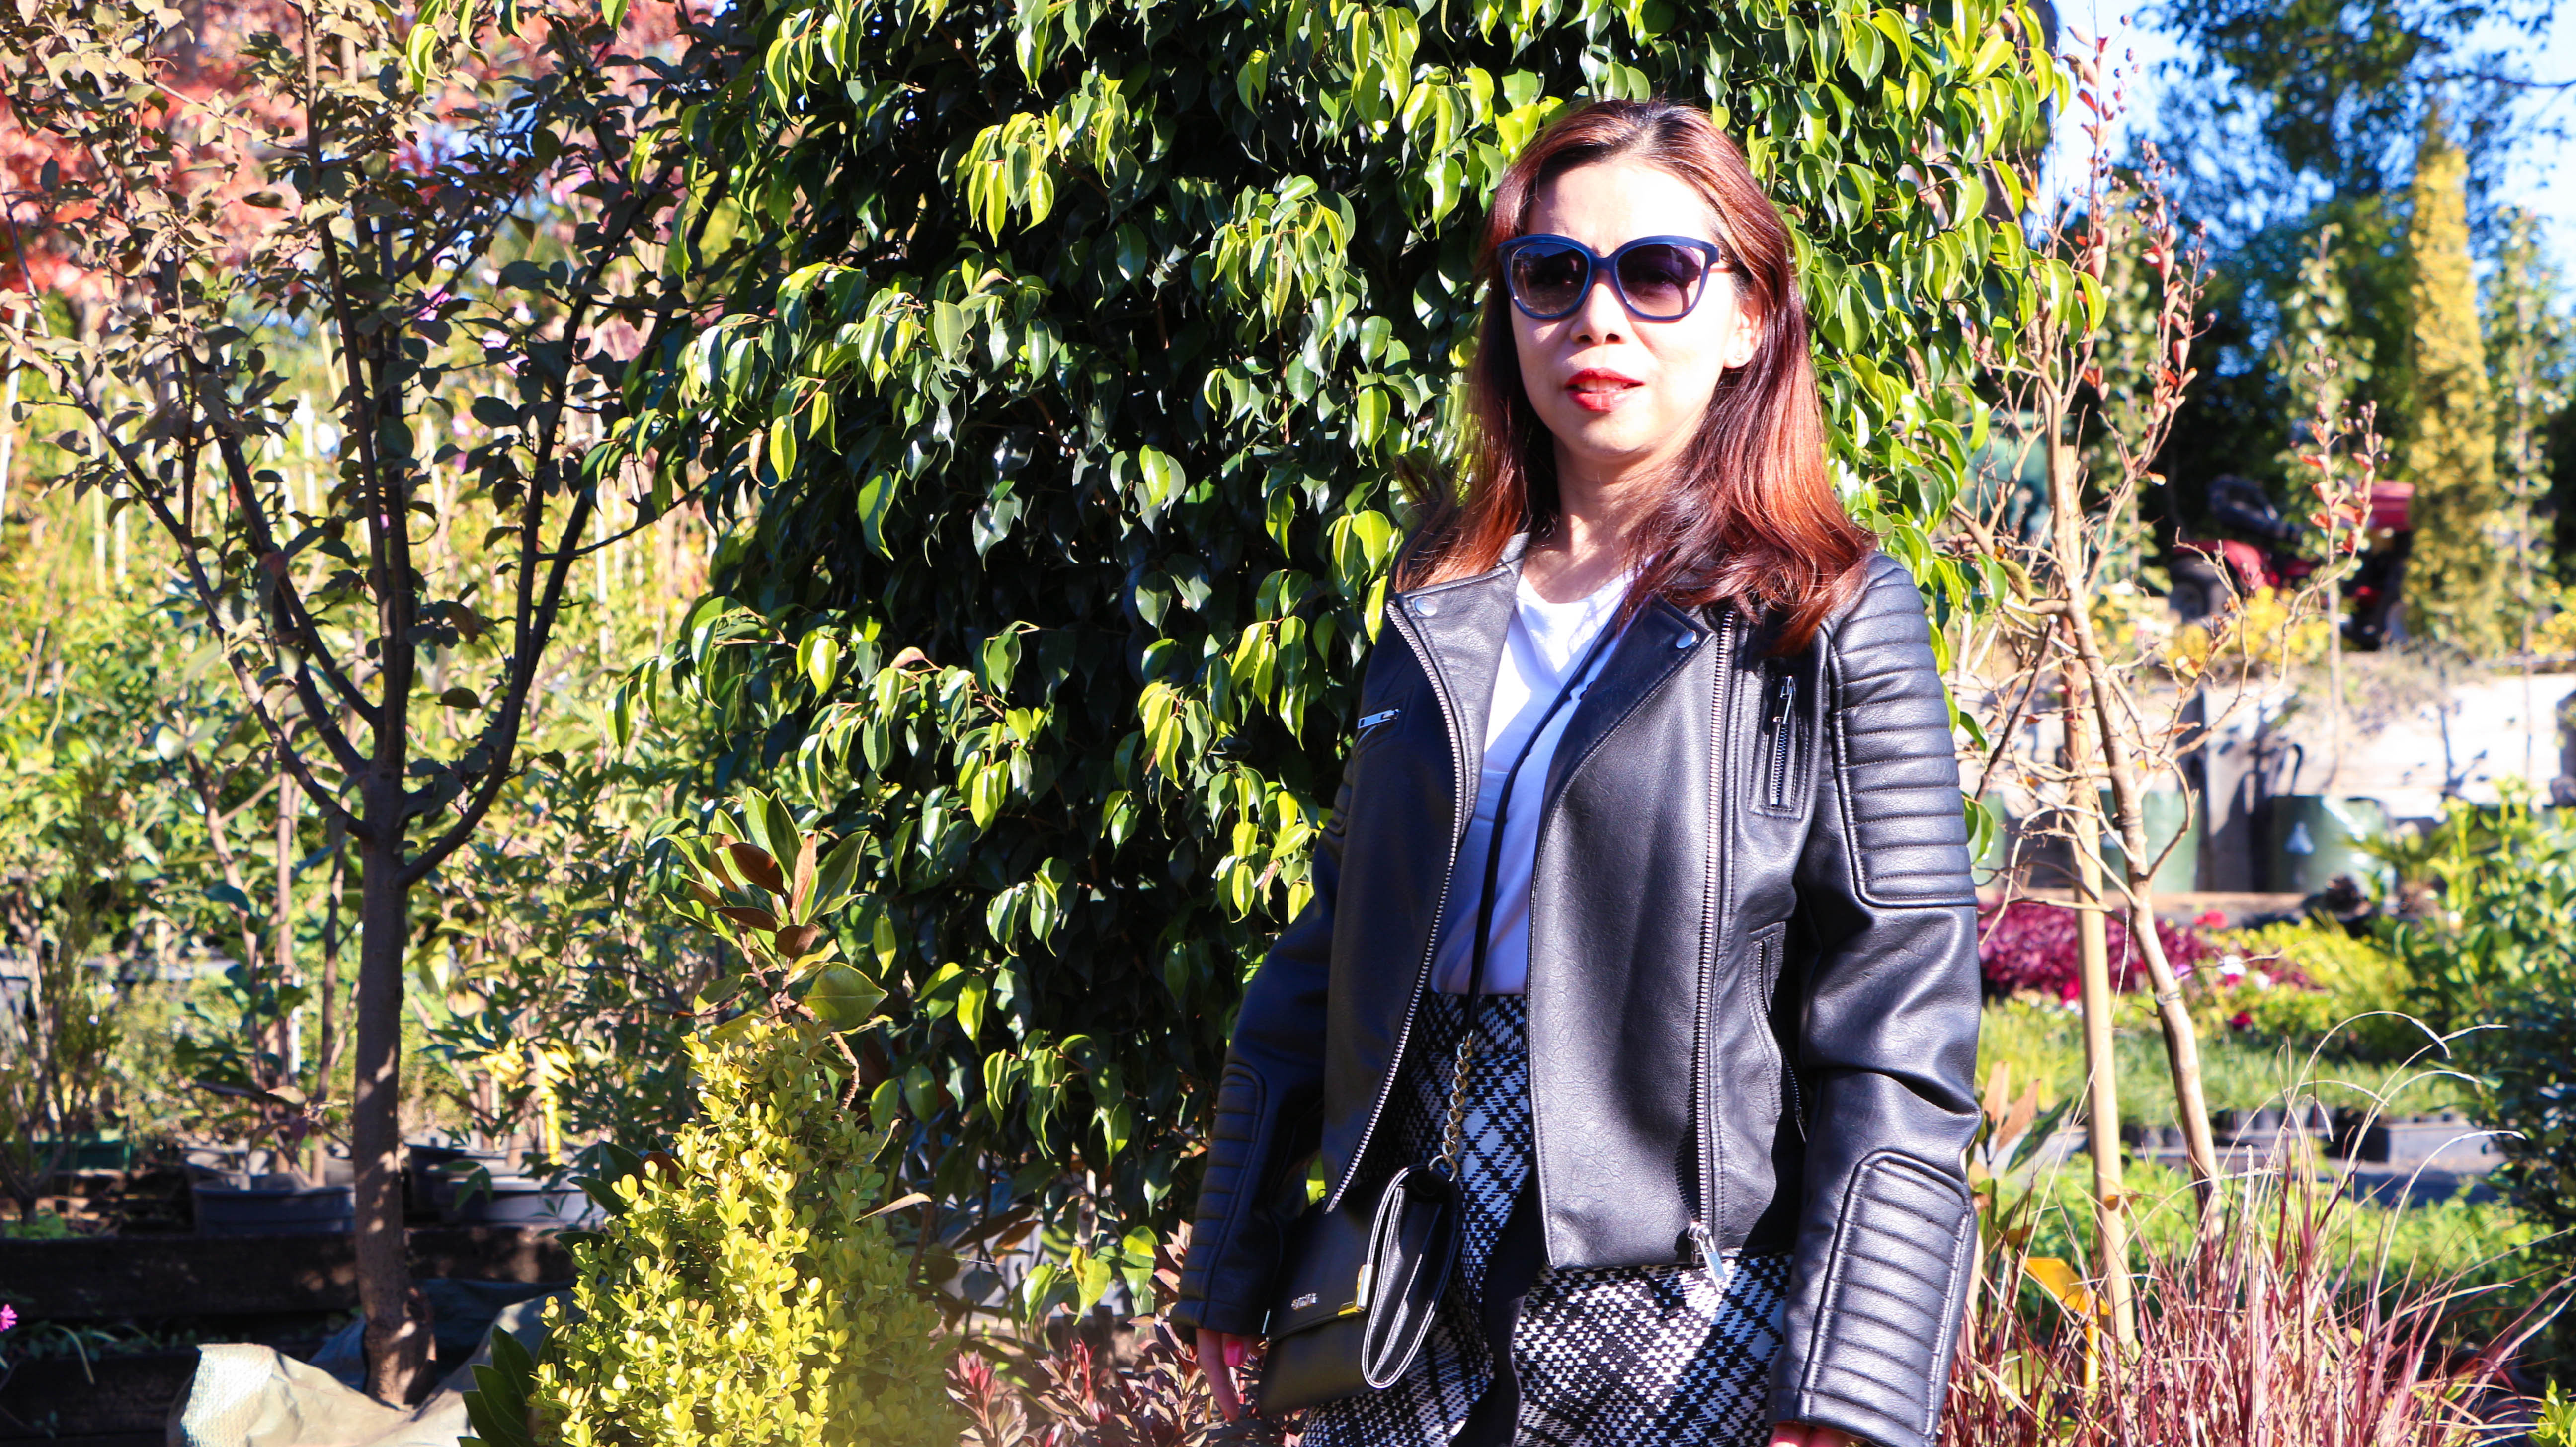 What to wear in transitional weather